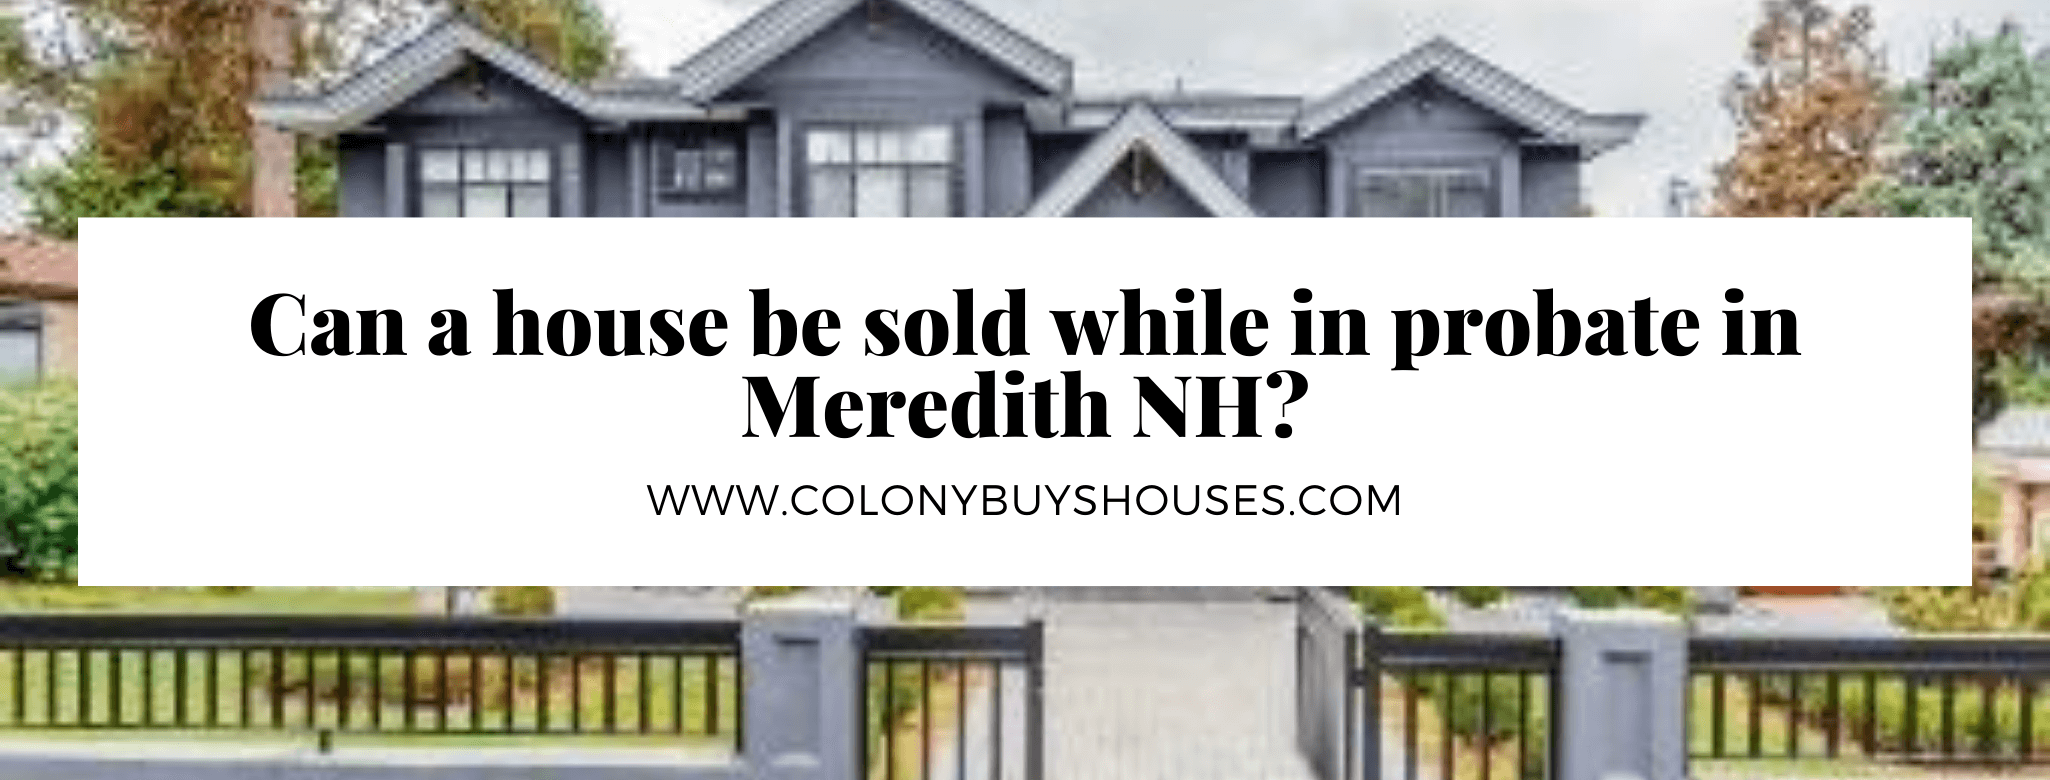 we buy properties in Meredith NH